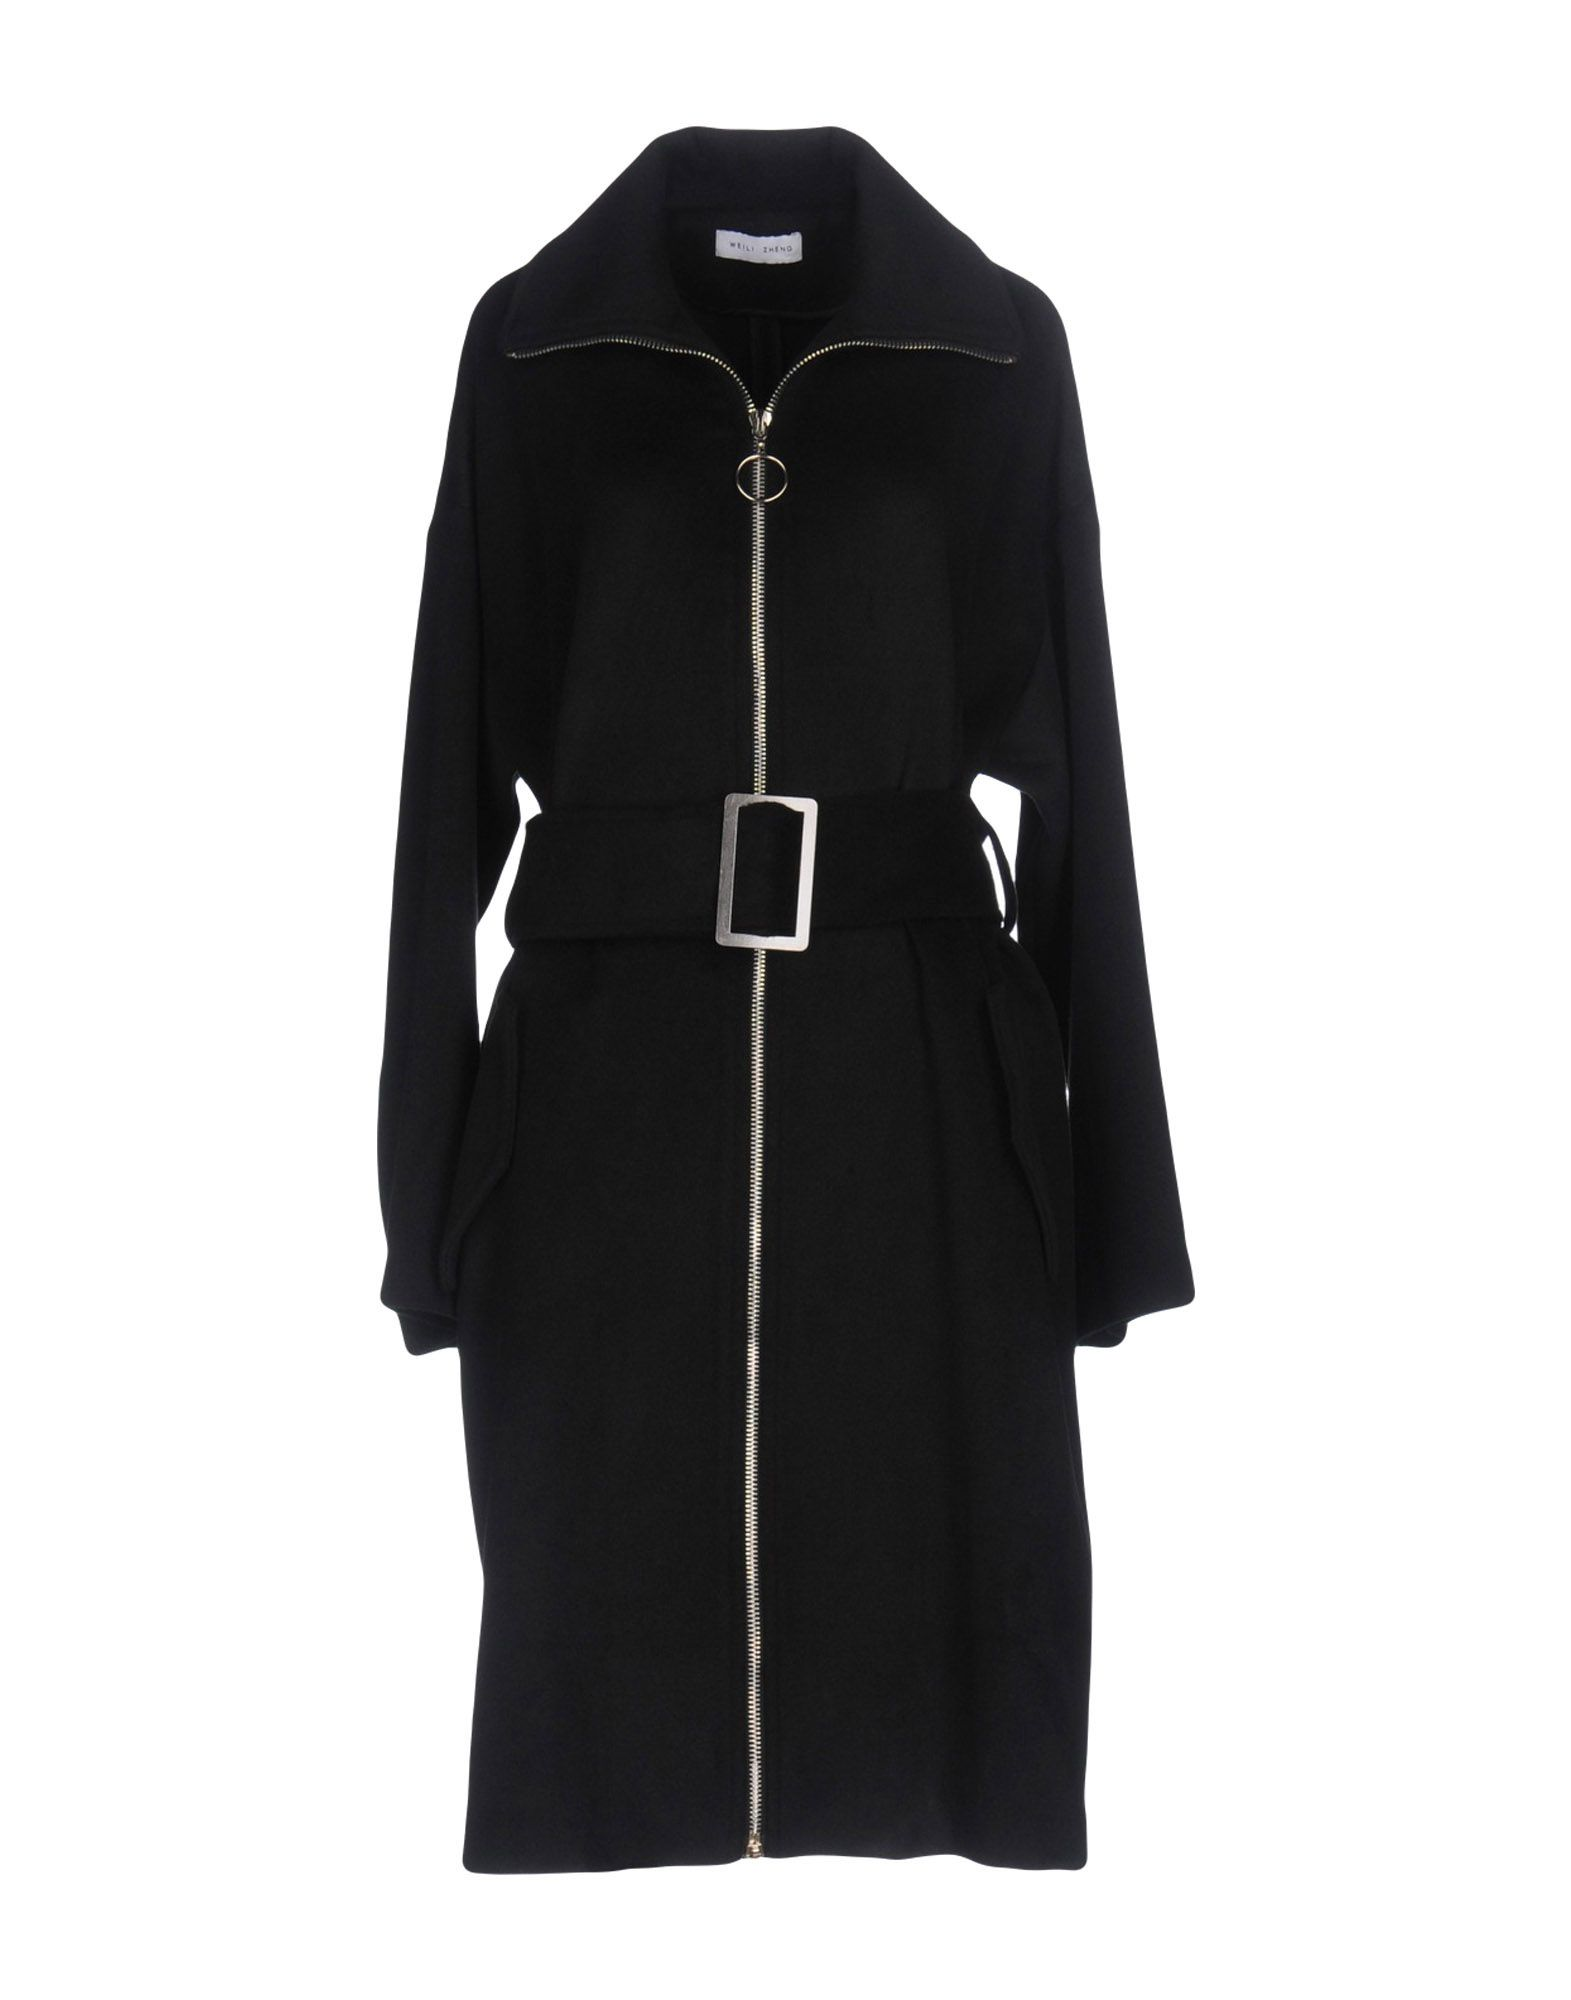 WEILI ZHENG Belted Coats in Black